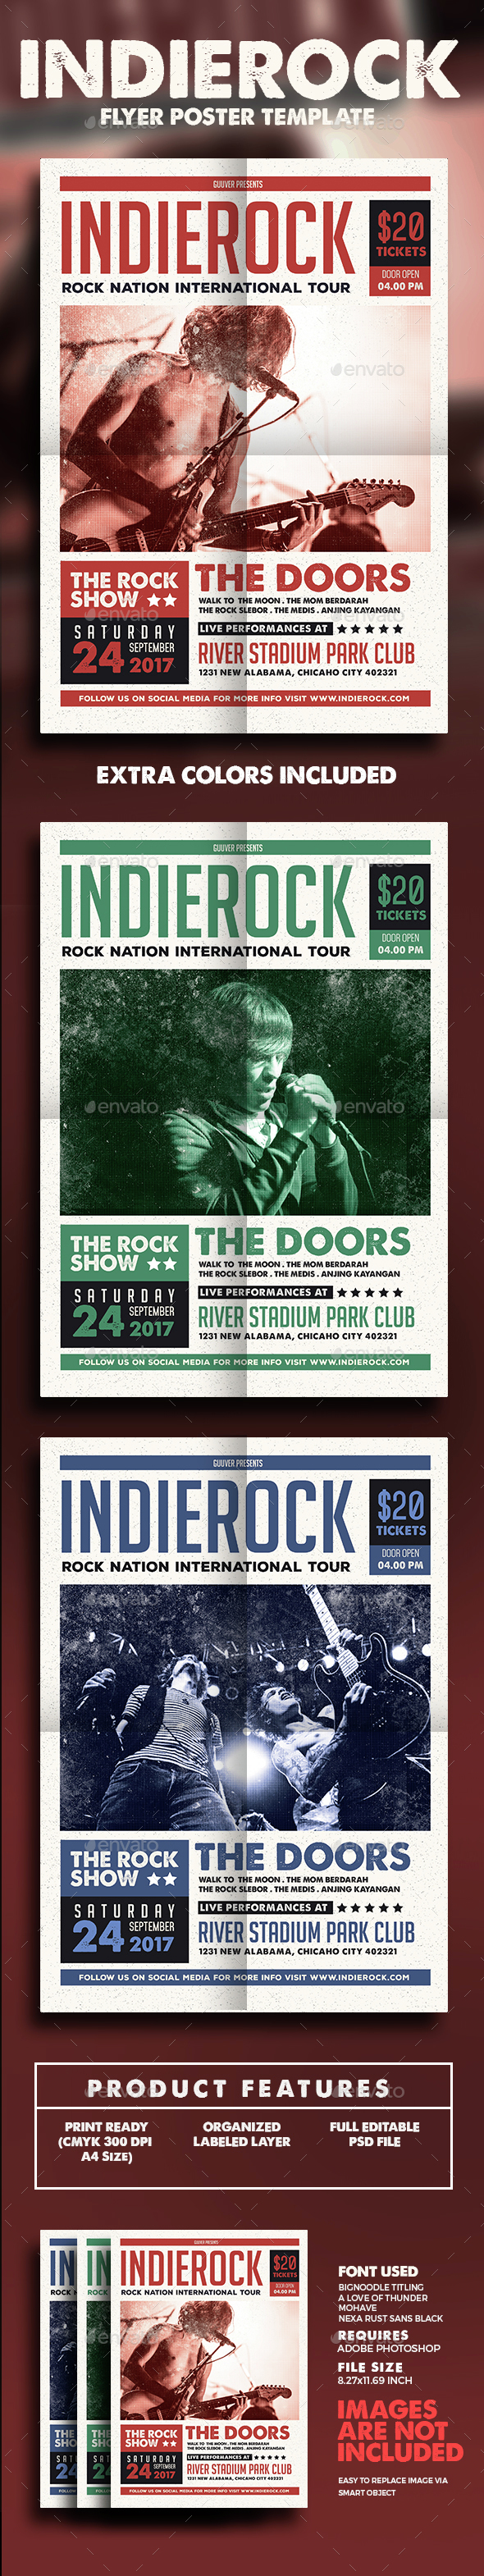 Indie Rock Flyer/Poster - Events Flyers